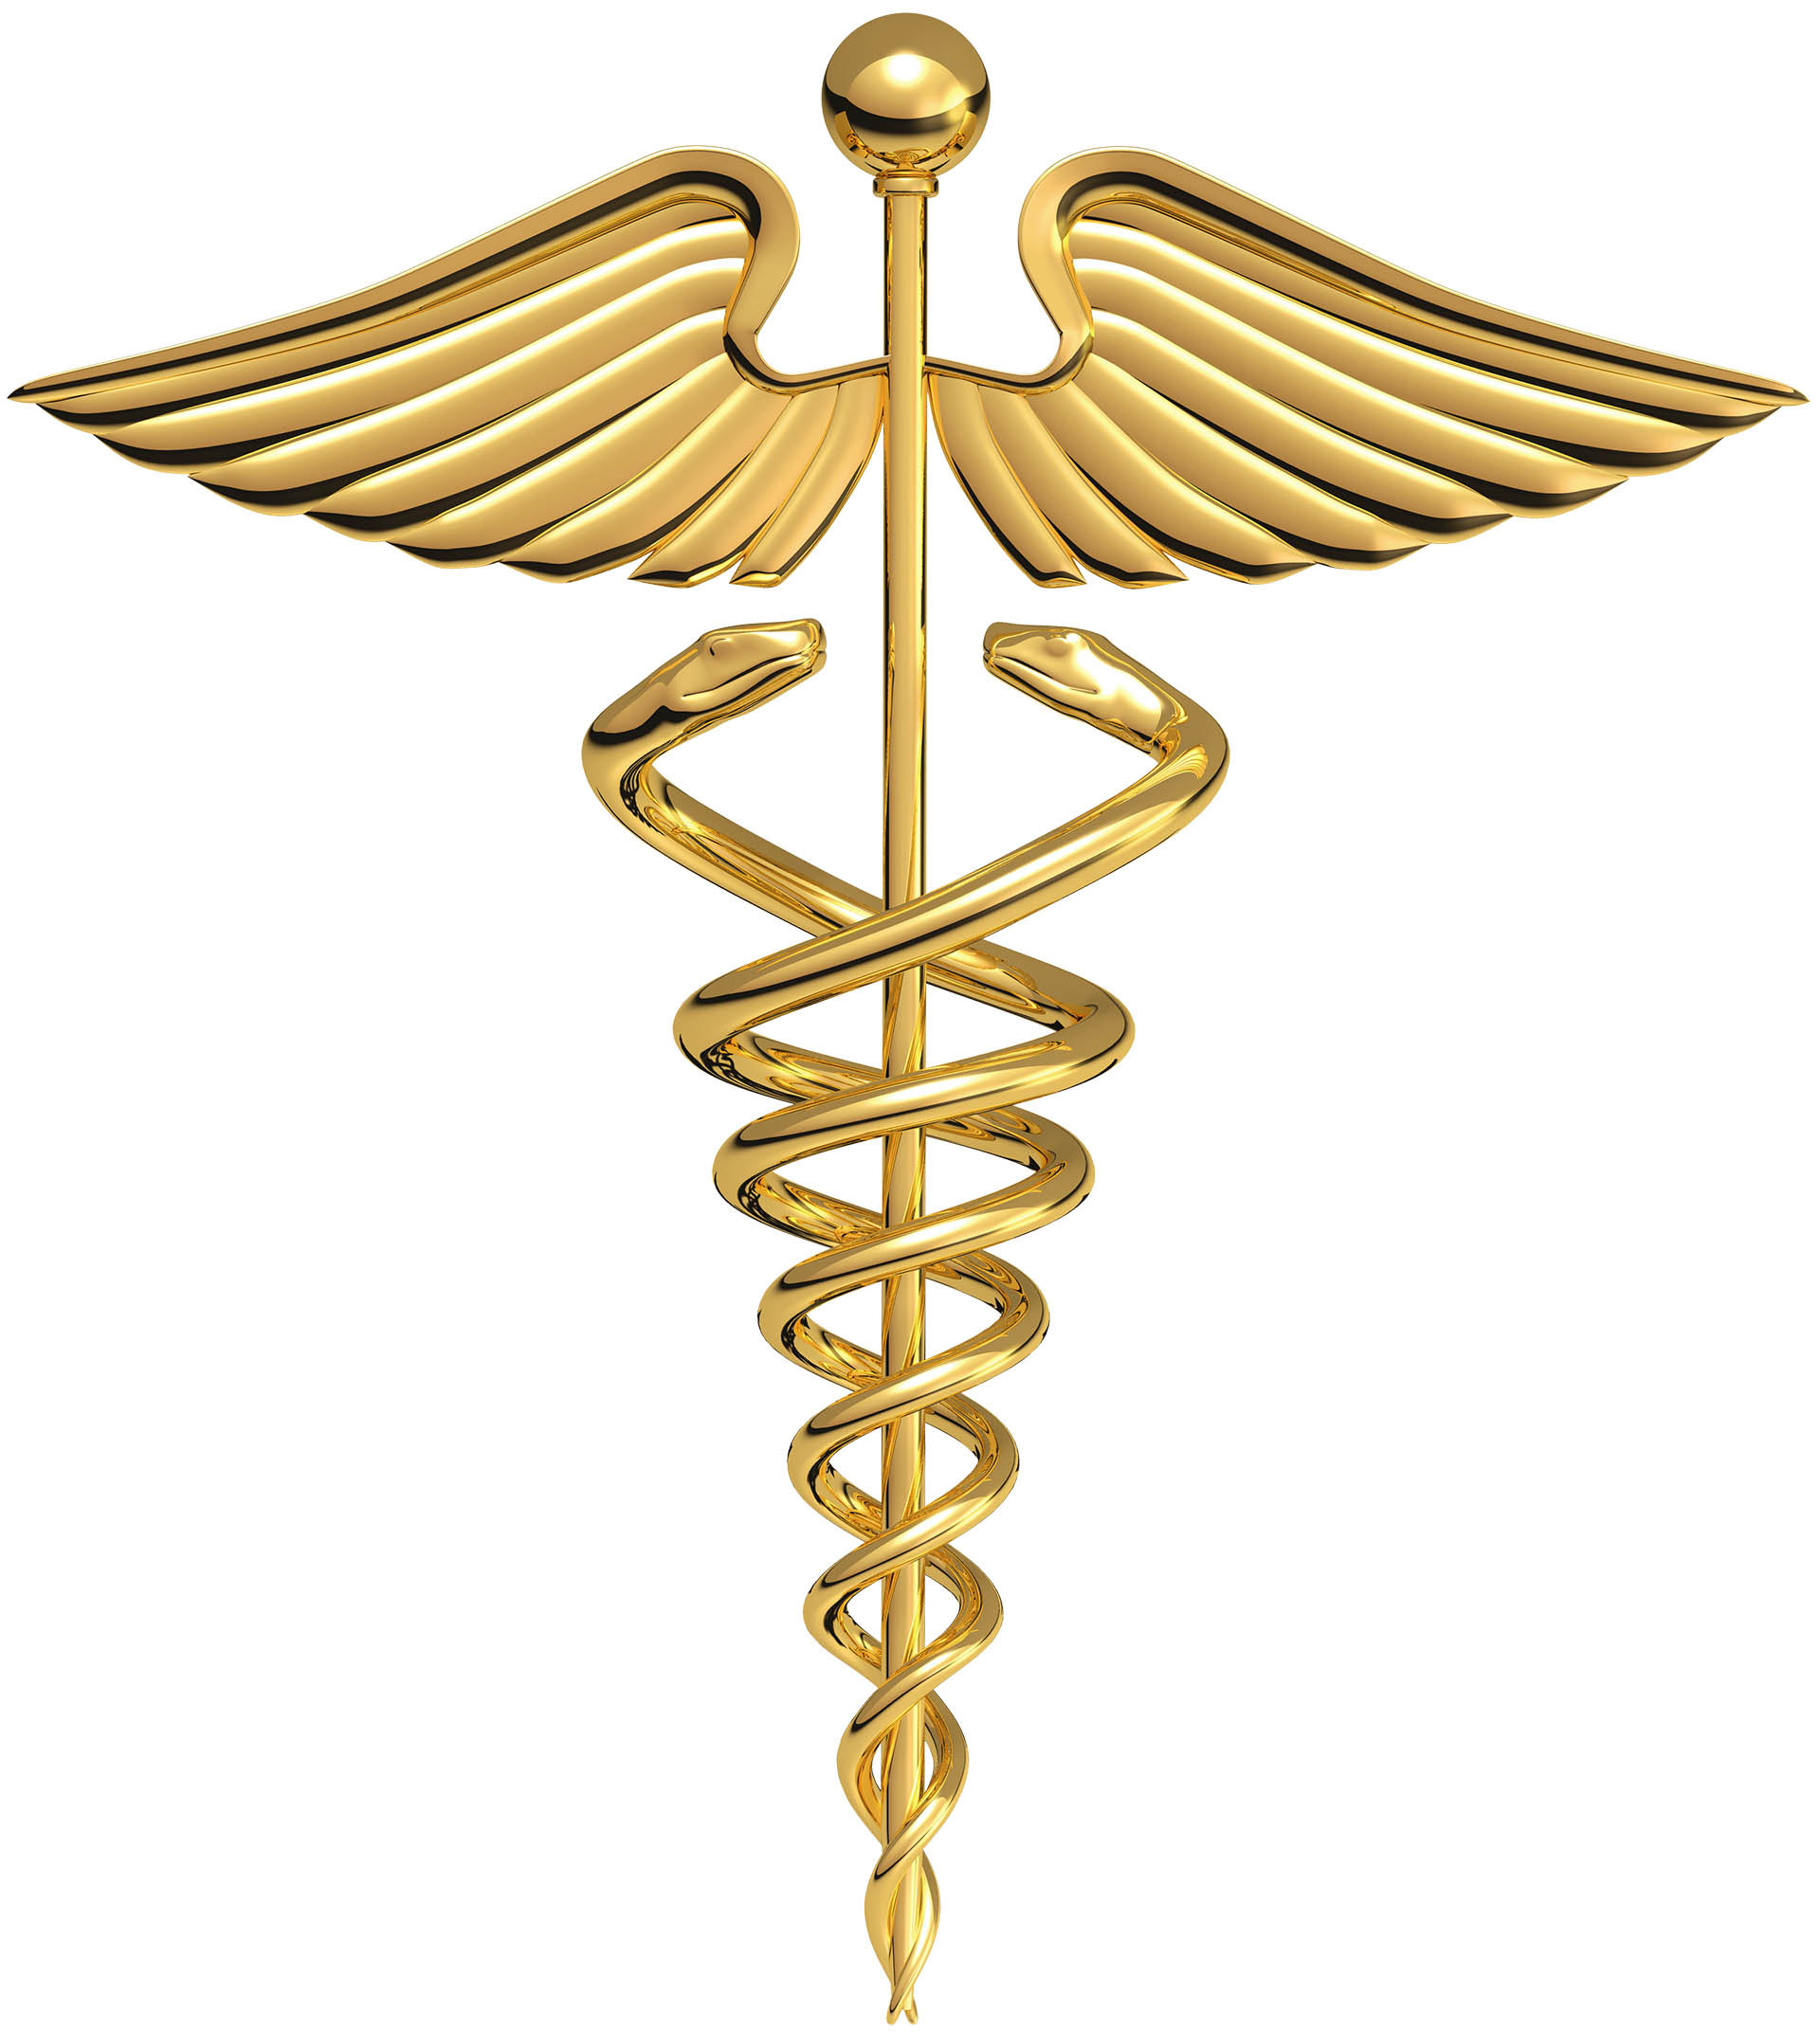 Caduceus - HEALTH - Messenger of the gods - COMPASSION - MERCY - BENEVOLENCE - BE HUMANE - DO NO HARM - FEAR NOT - BE NOT AFRAID - CAUSE NO PAIN - BE AS PAINLESS AS POSSIBLE - CAUSE NO FEAR - DO NOT BE SCARY - USE BIRTH CONTROL - PERMIT DIVORCE - DO NOT PUNISH - DO NOT MAKE THREATS - DO NOT BE COERCIVE - BE PERMISSIVE - BE TOLERANT - FREE UNIVERSAL HEALTH CARE - FREE UNIVERSAL EDUCATION